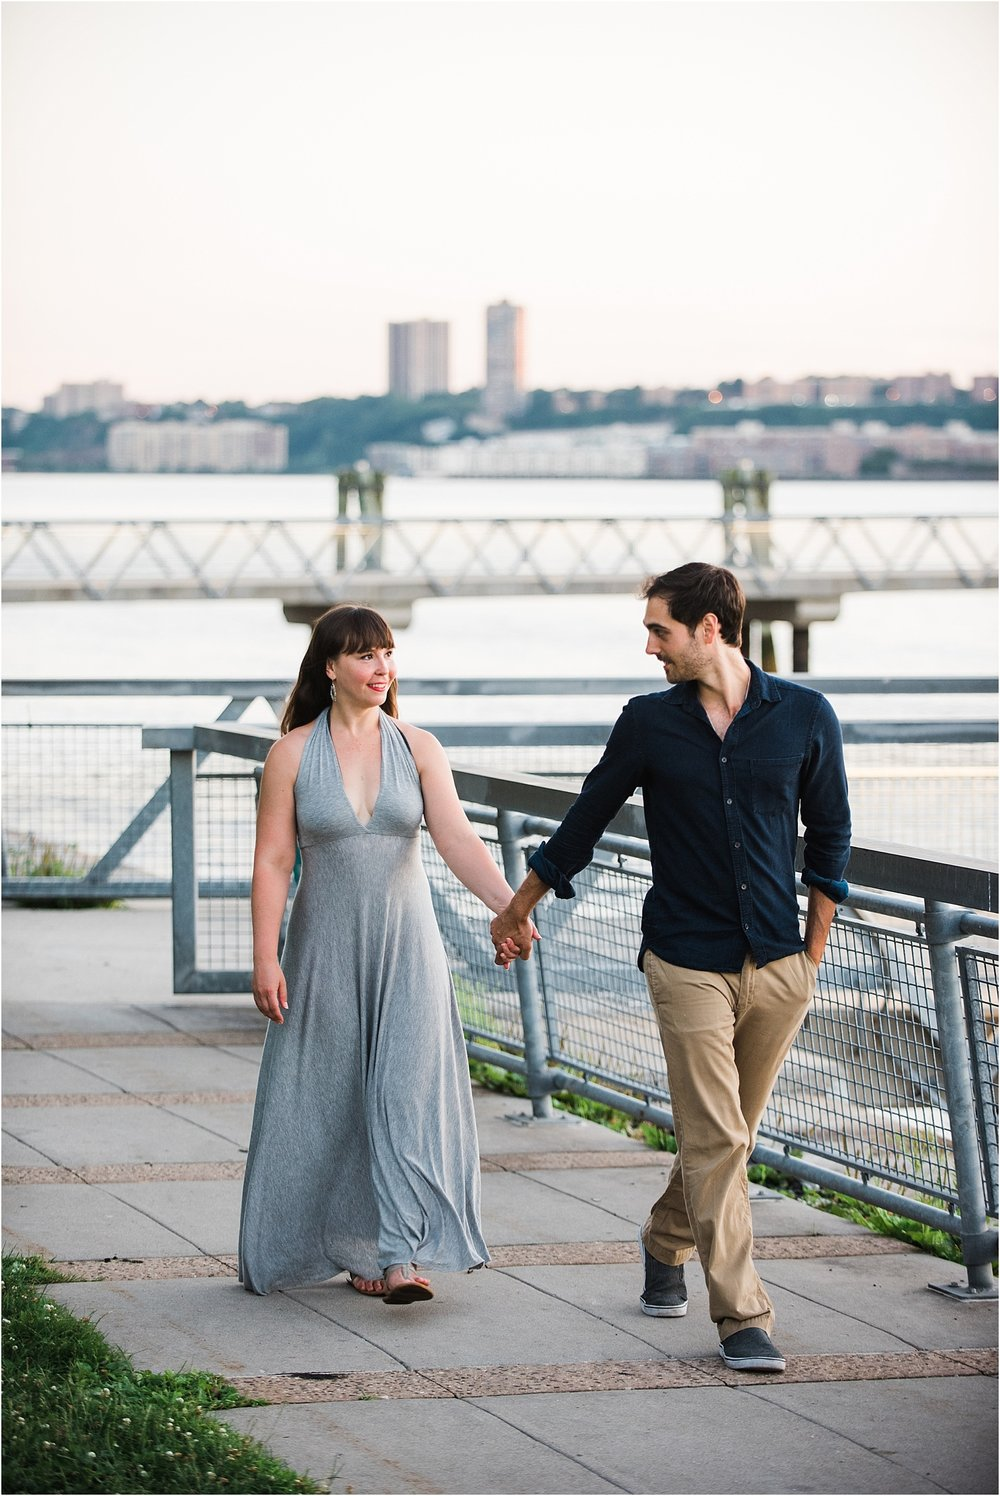 NYC_Engagement_Session_Harlem_Engaged_Photography_016.jpg